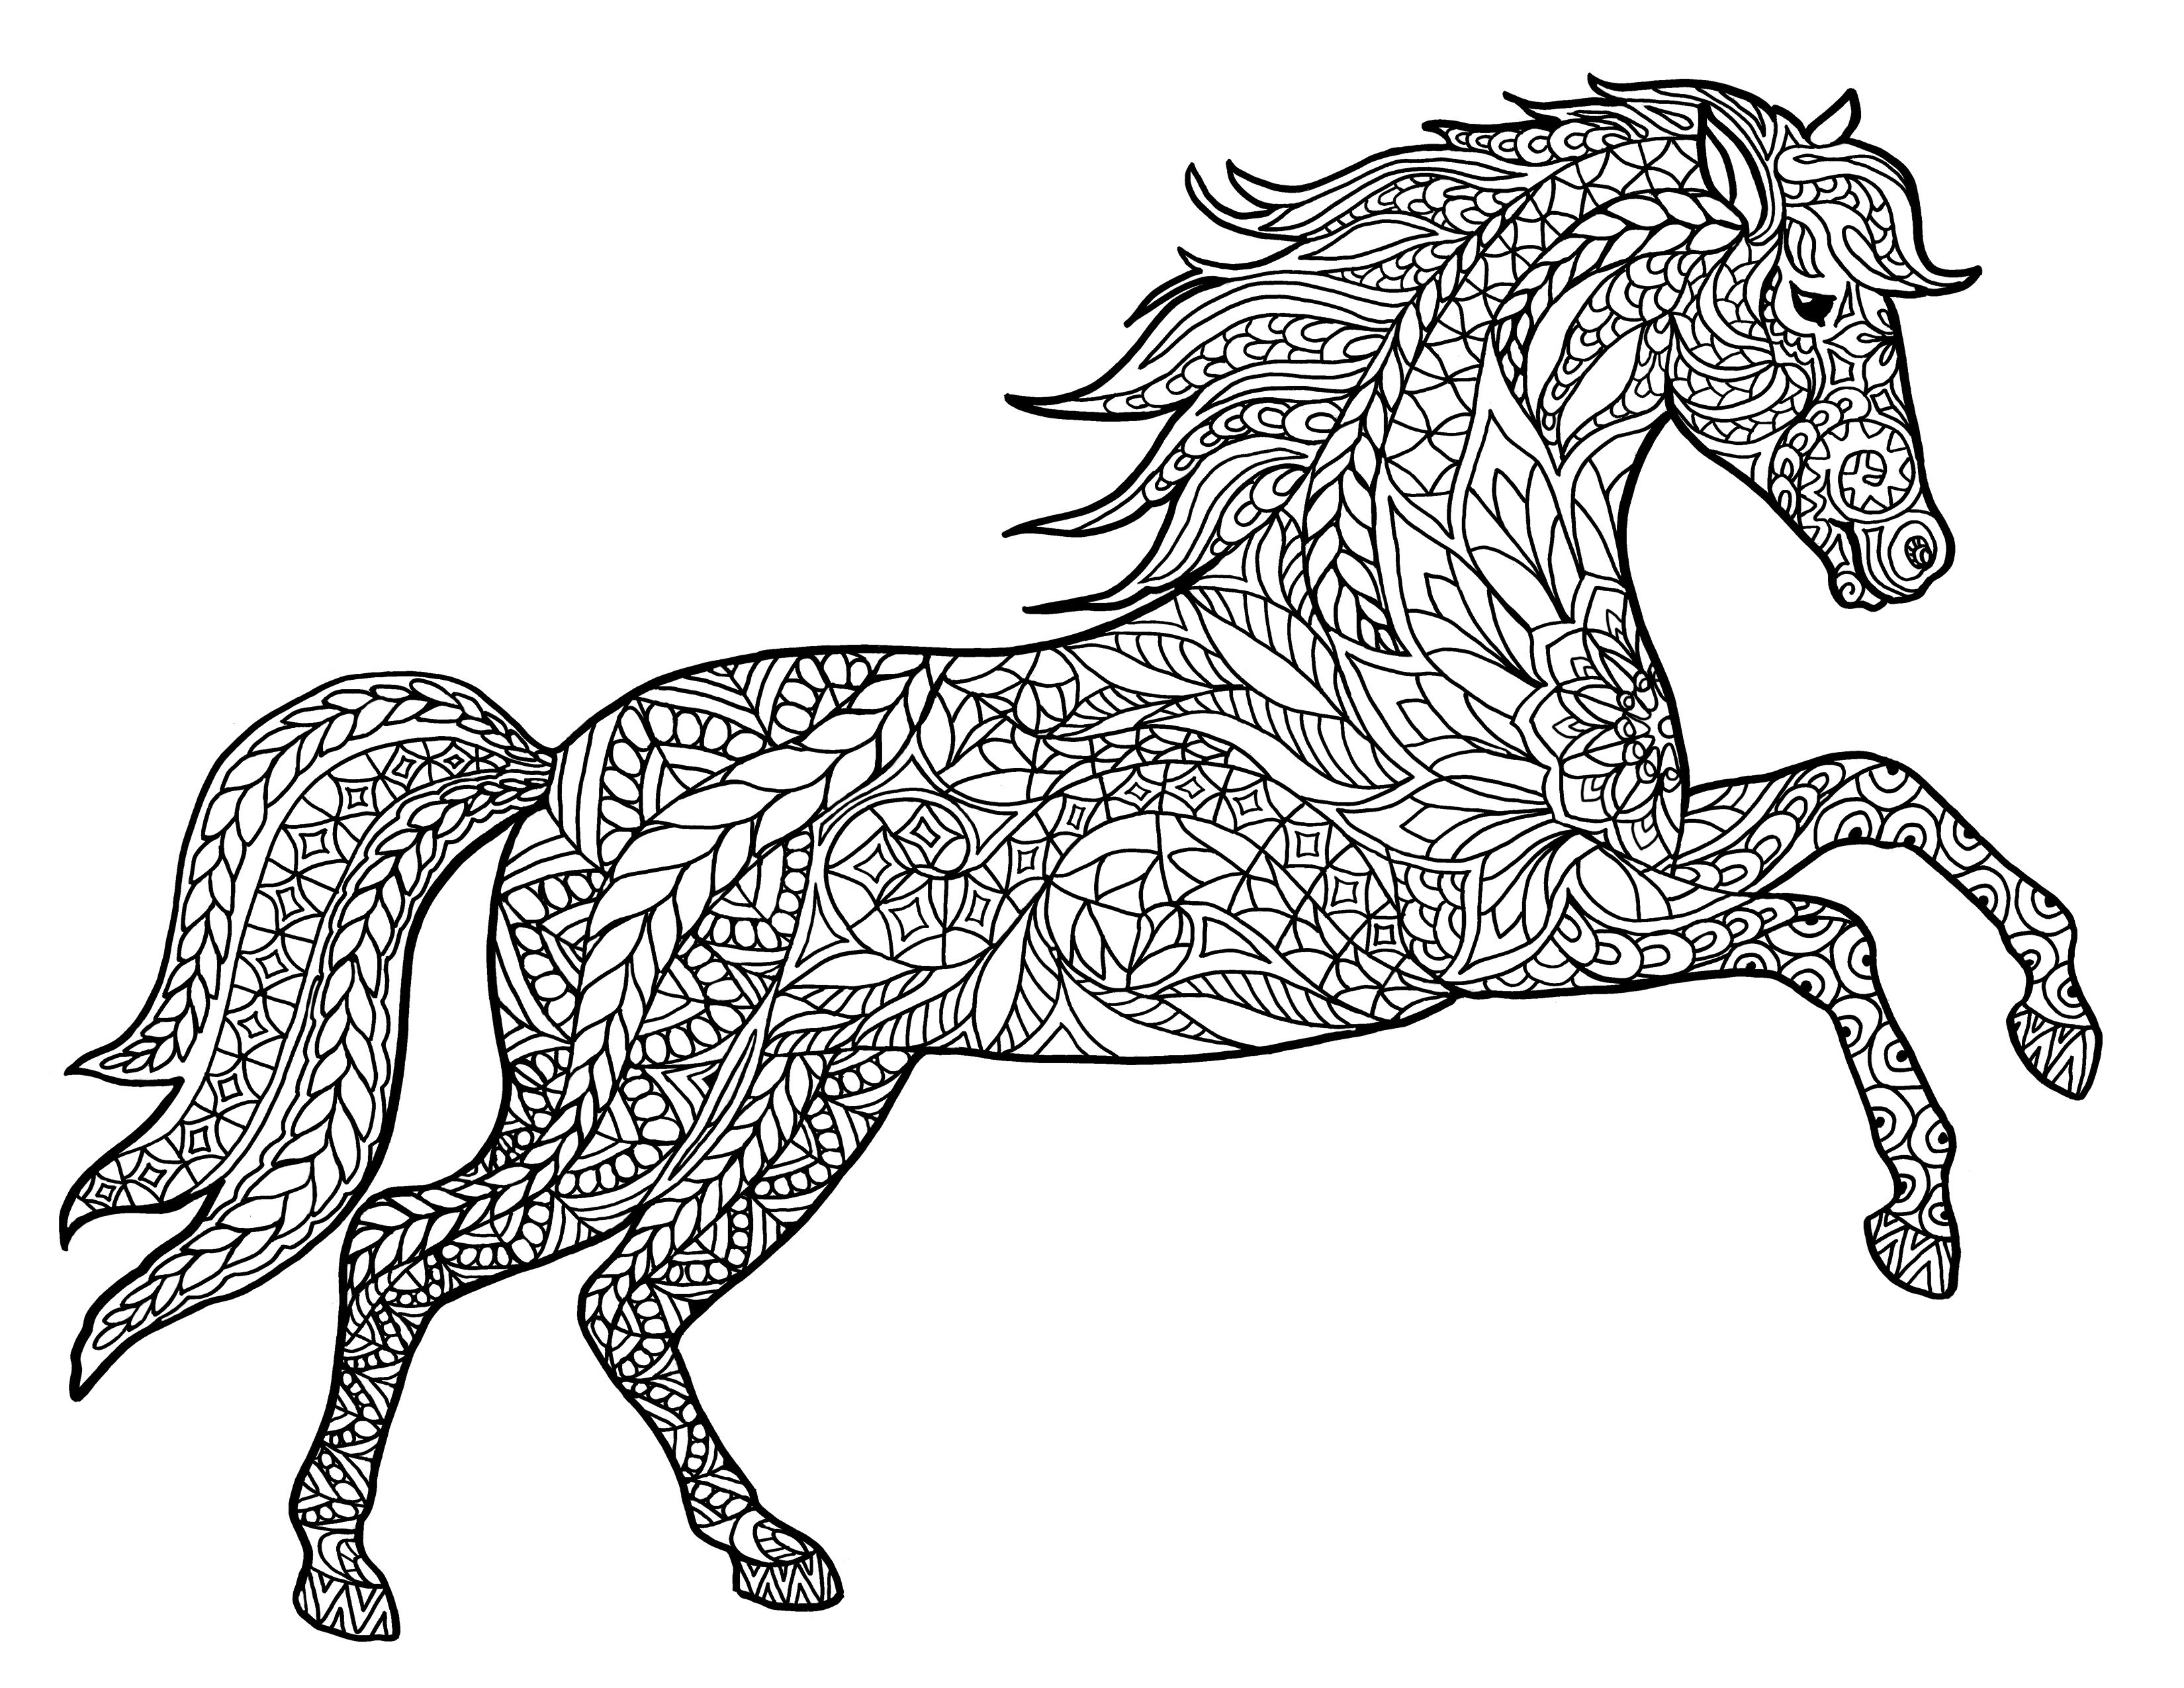 Coloring Pages Horses Coloring Pages Horses Luxury Horse For Adults New Real Copy 3300